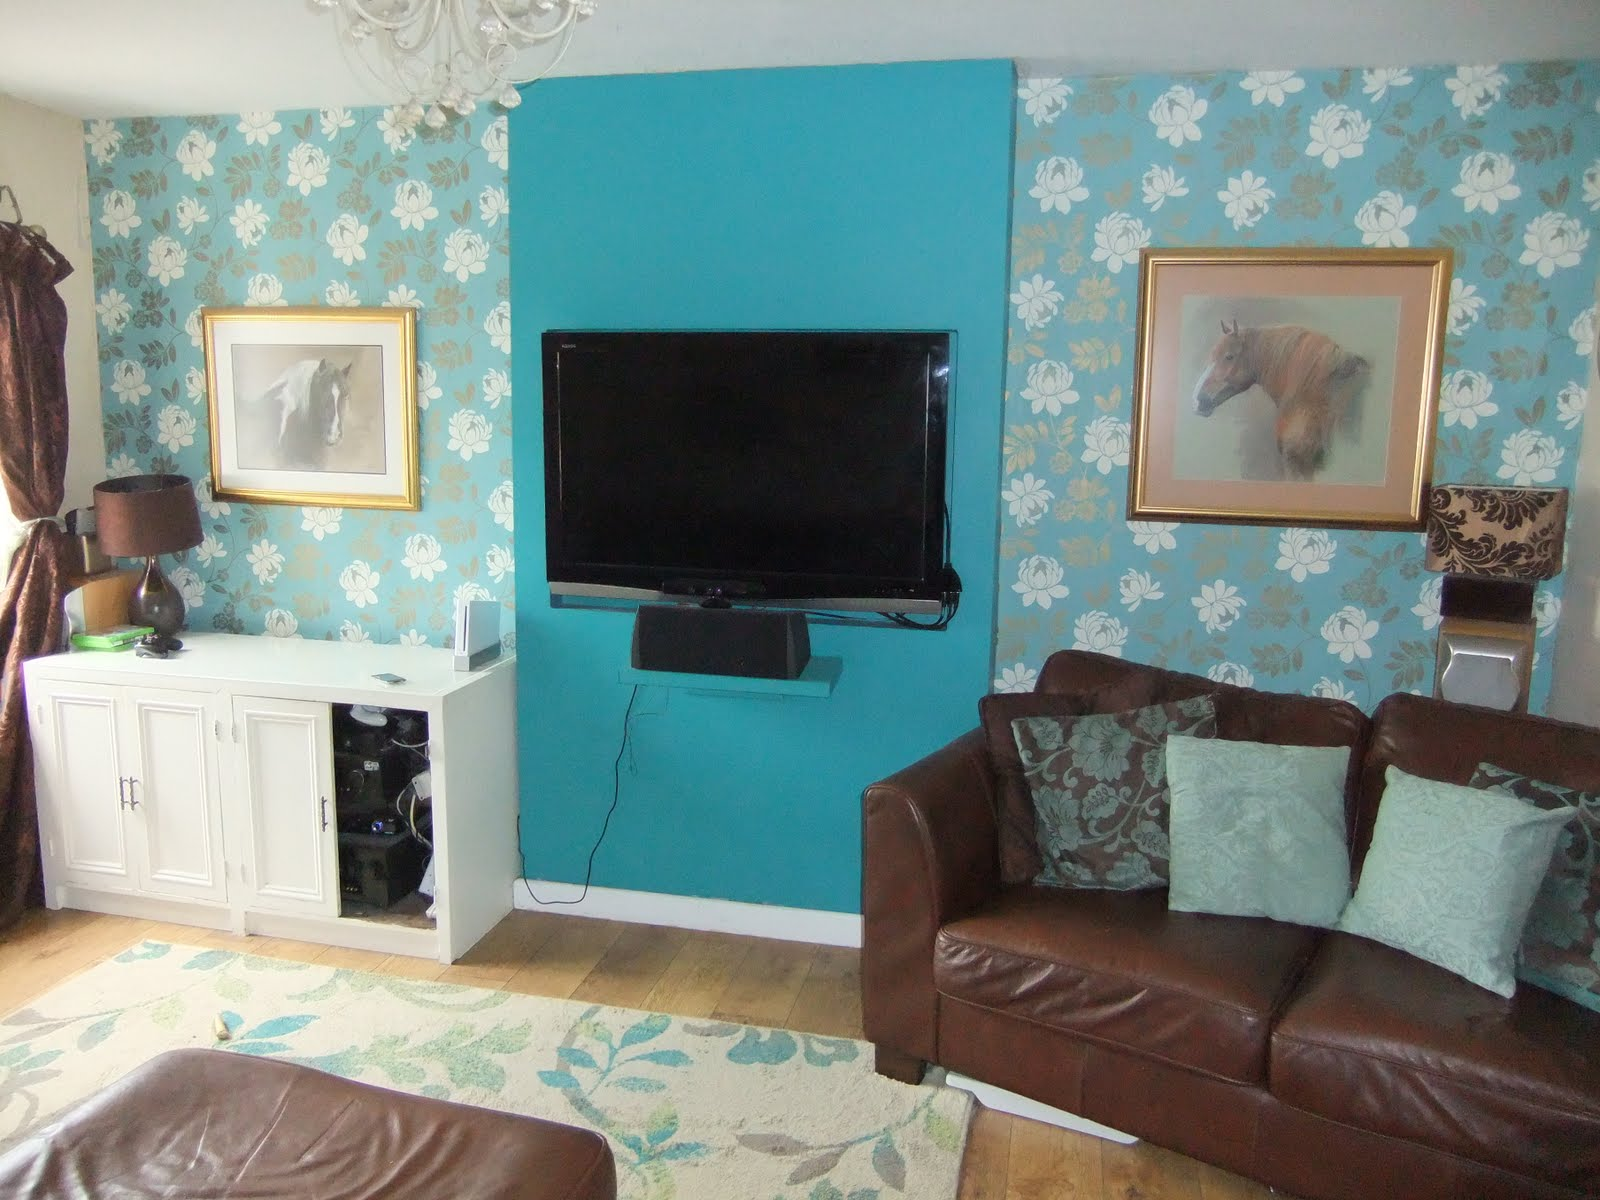 Trololo Blogg Wallpaper Alcoves Or Chimney Breast